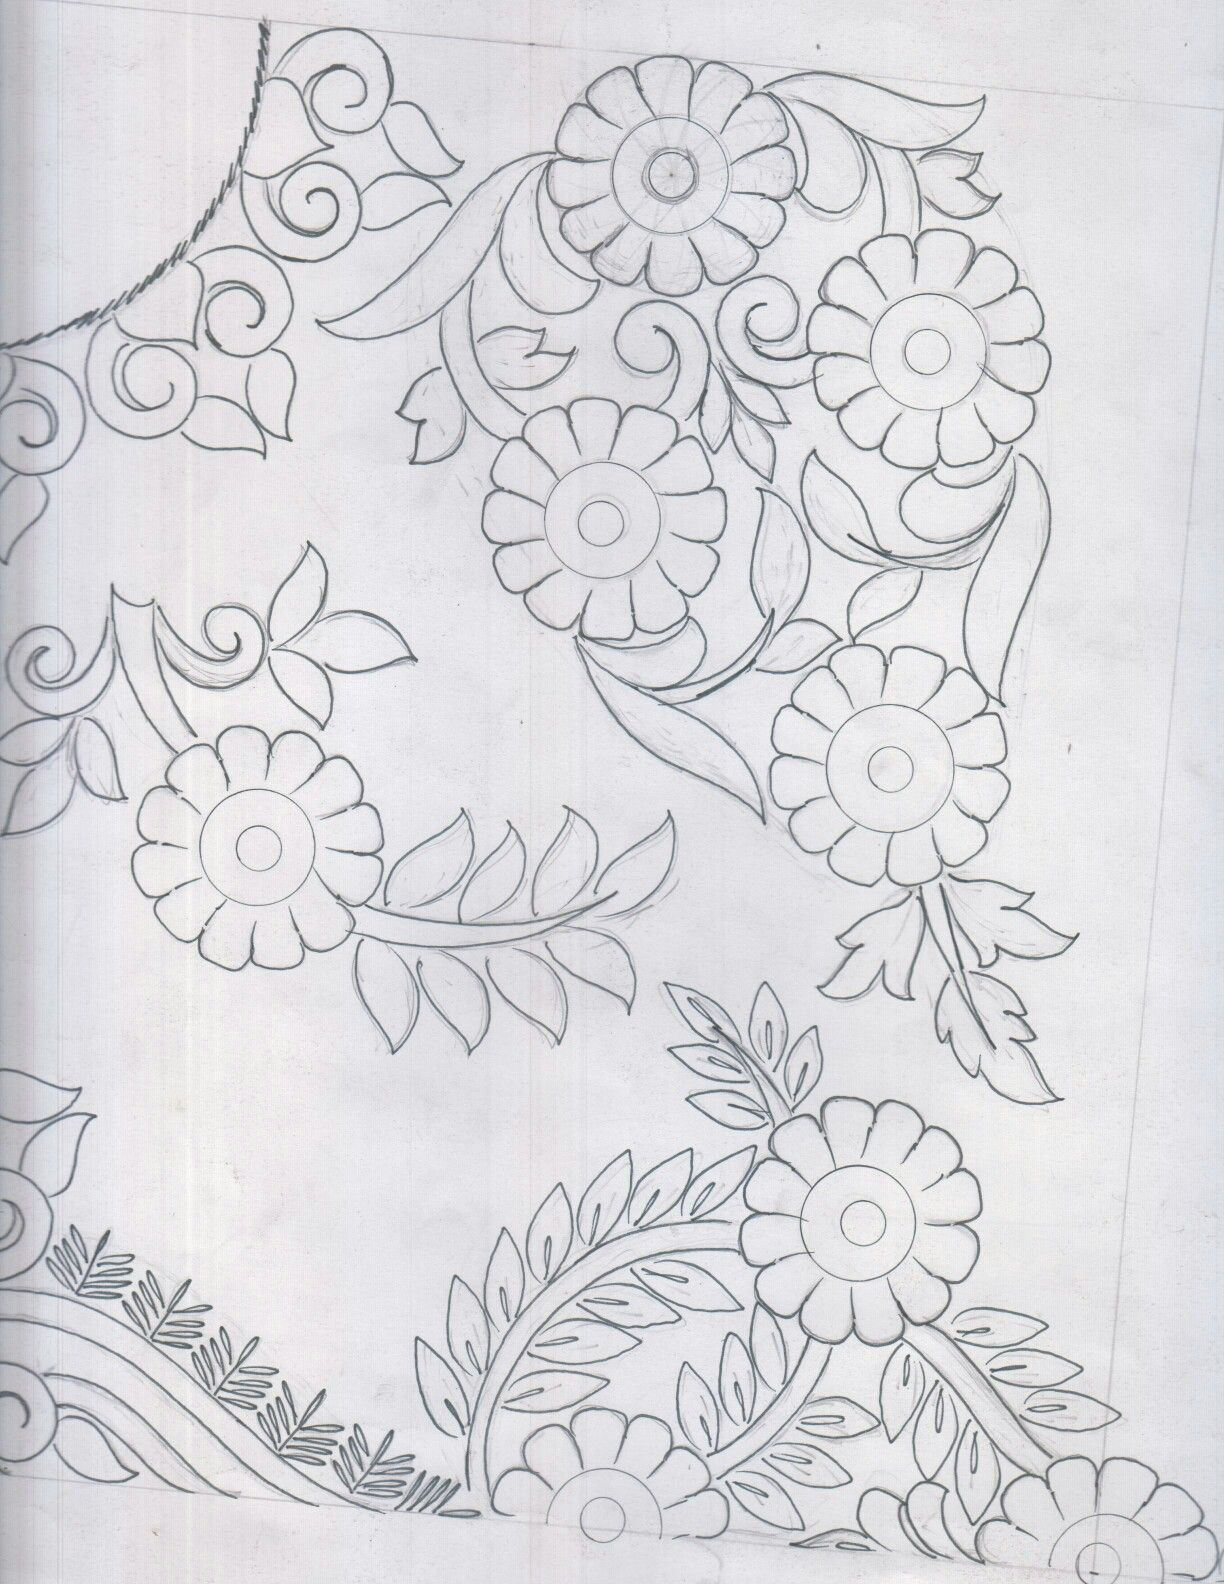 design   Hand embroidery designs, Embroidery designs, Embroidery ...